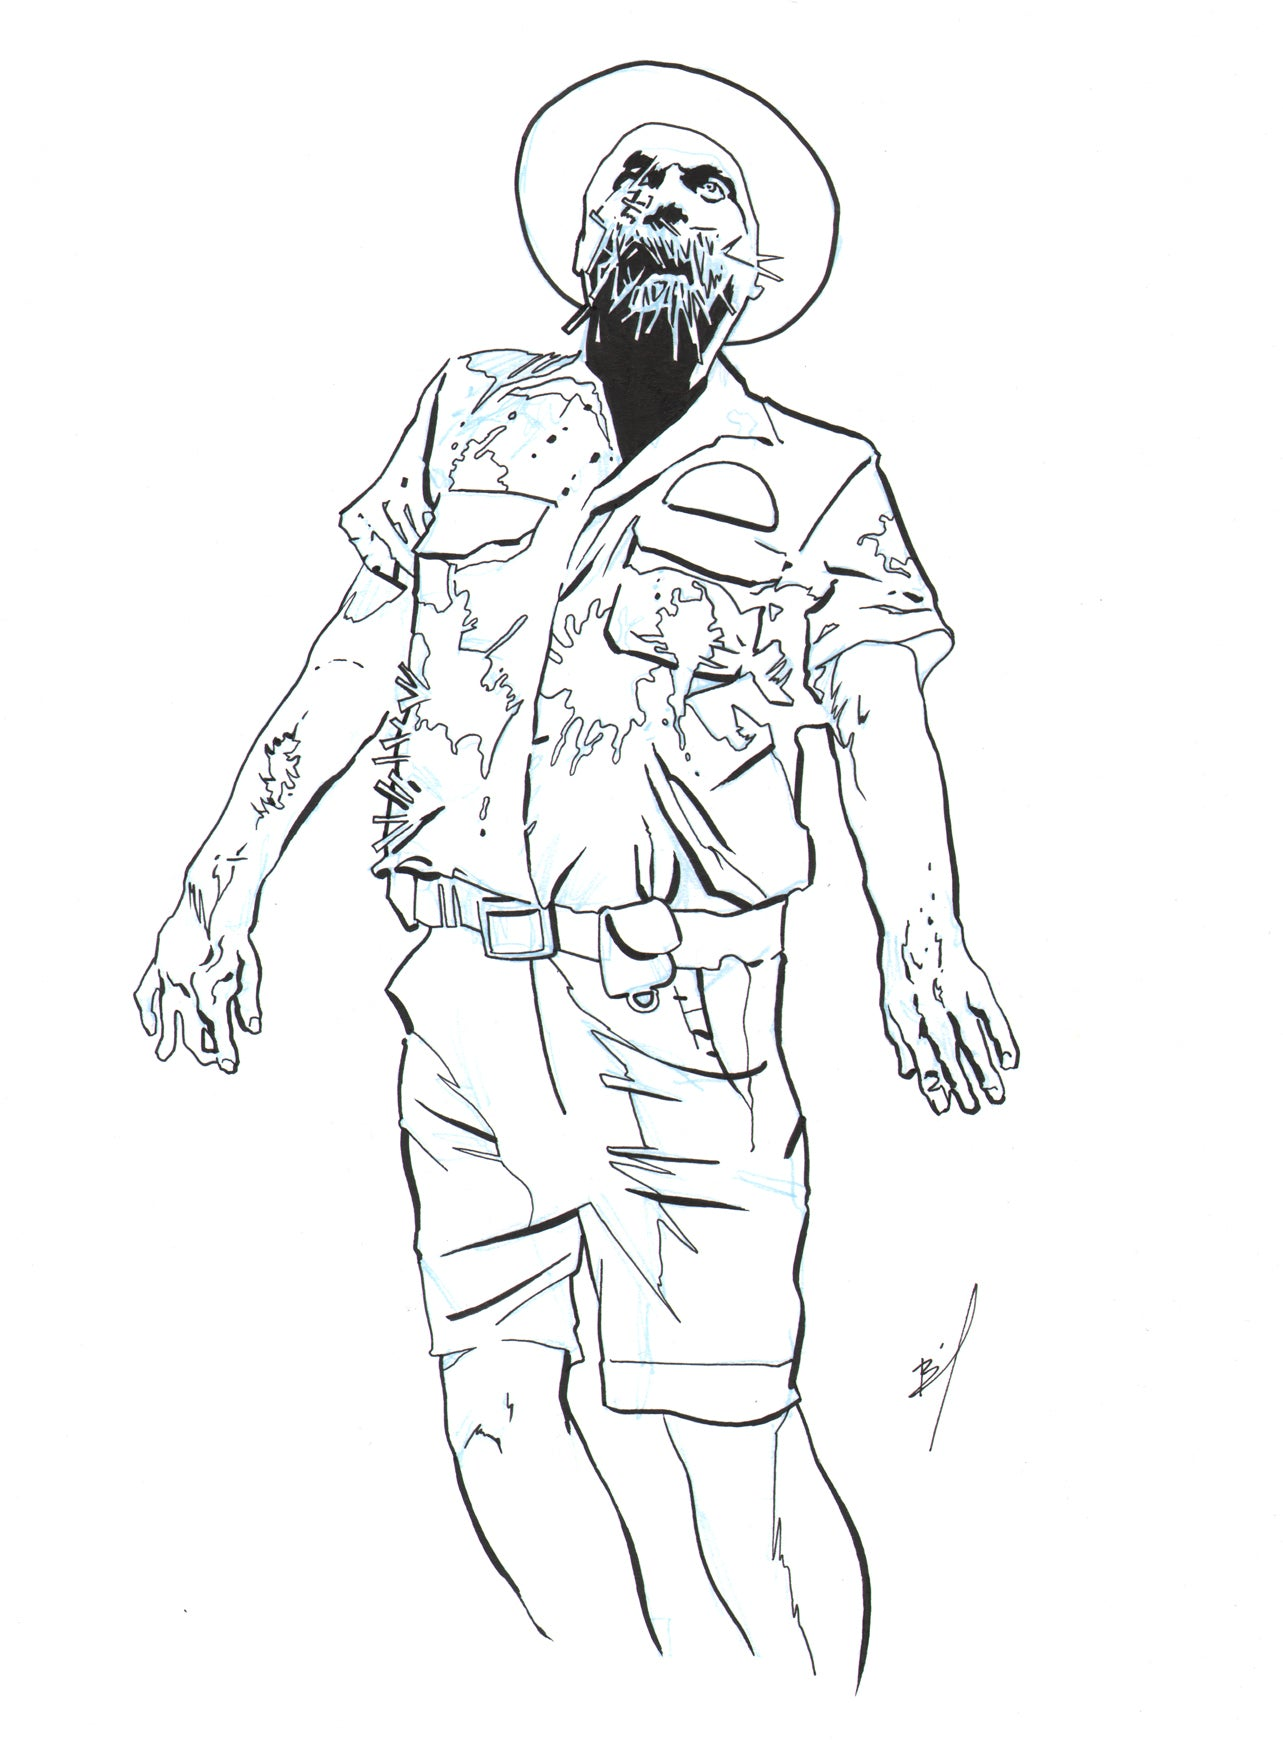 Drawing of a walking zombie